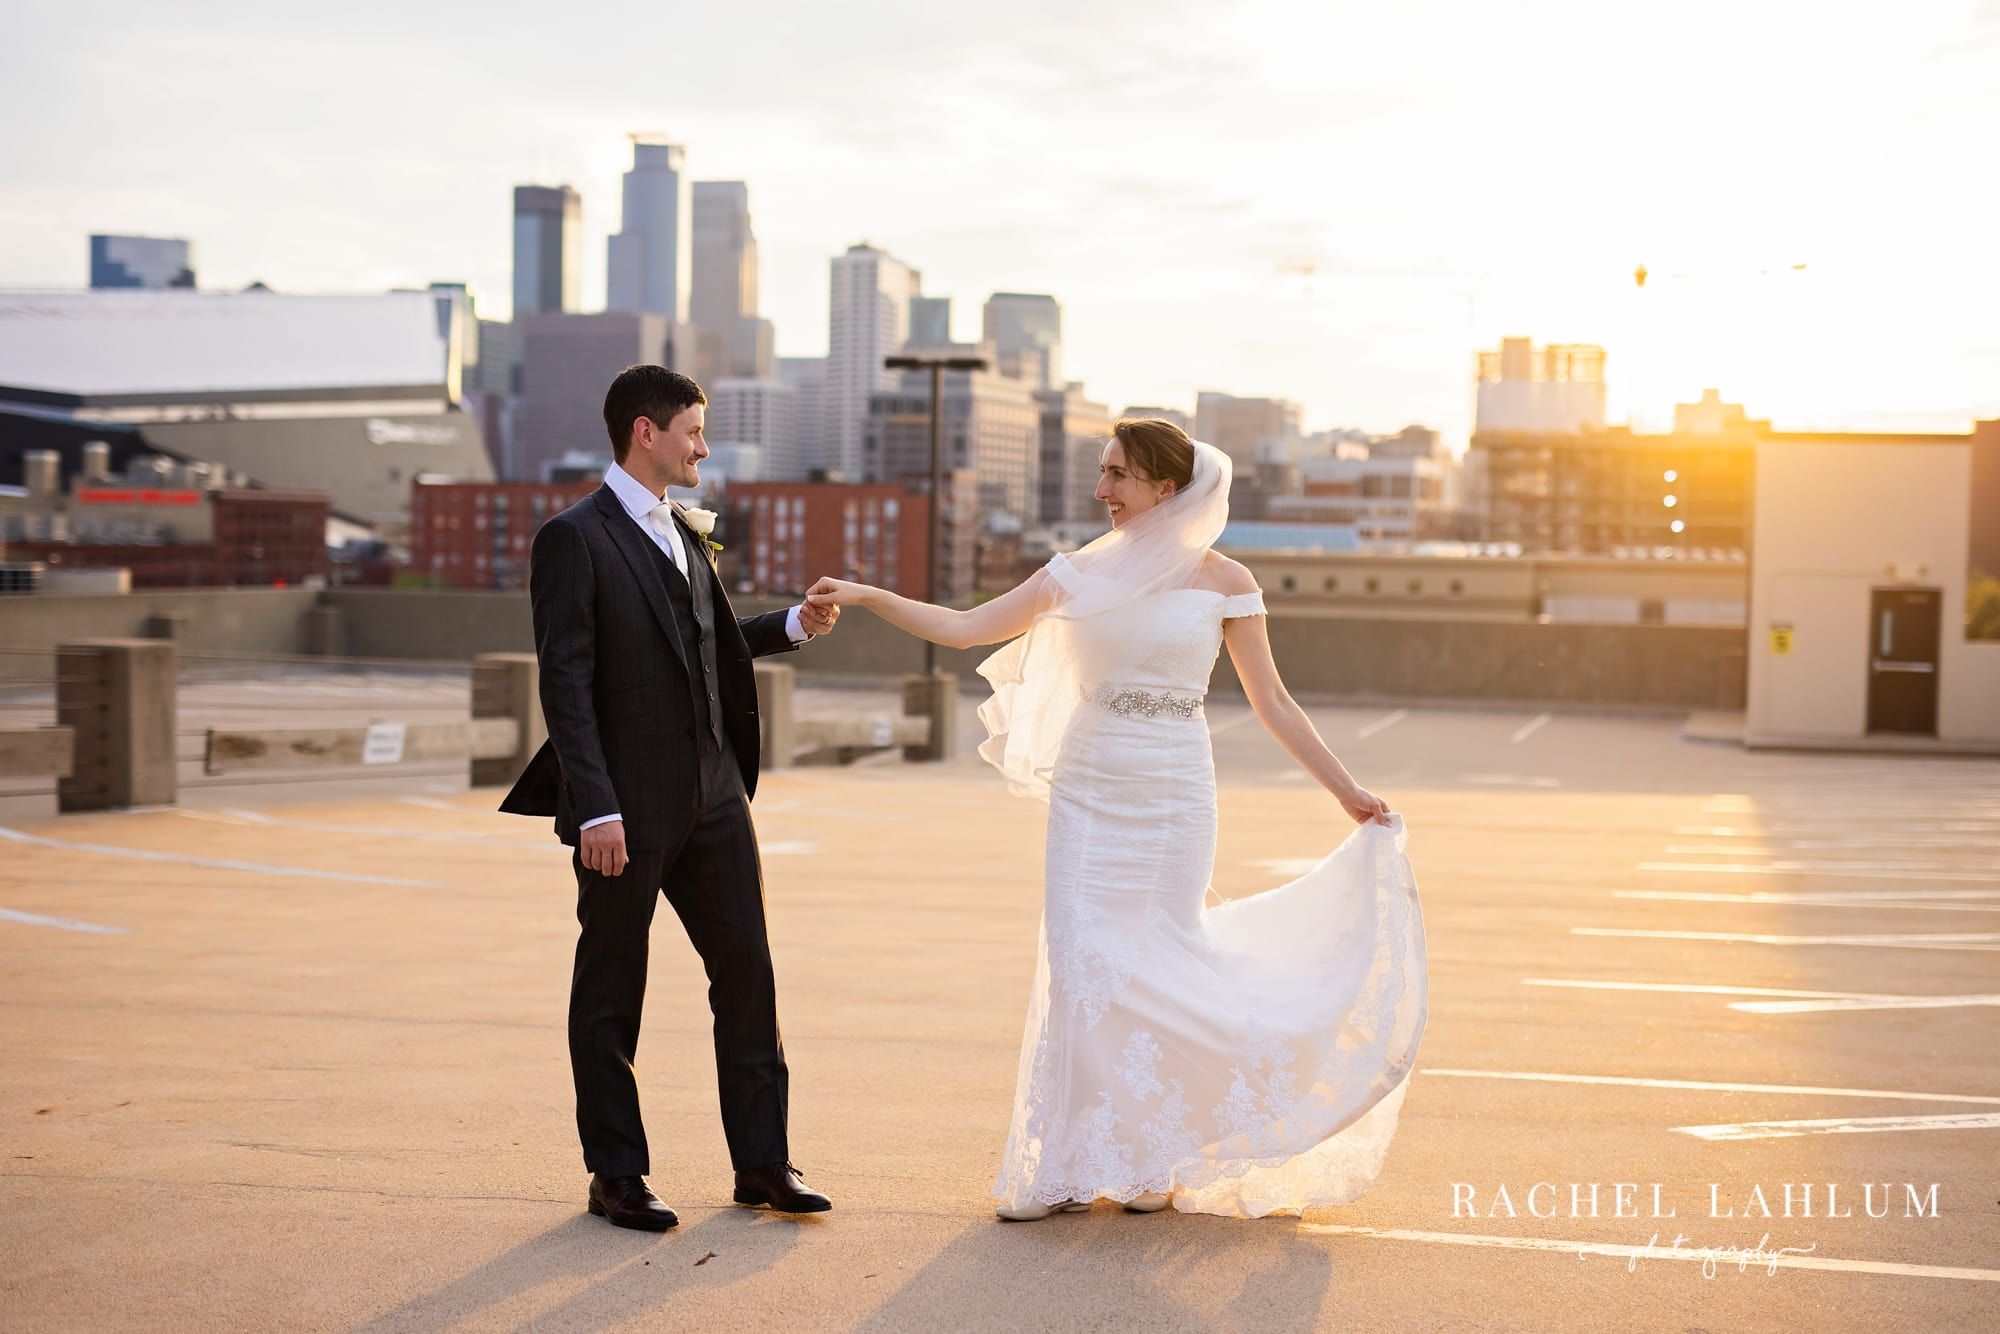 Newly-wed couple pose on rooftop at sunset during wedding reception in Minneapolis.